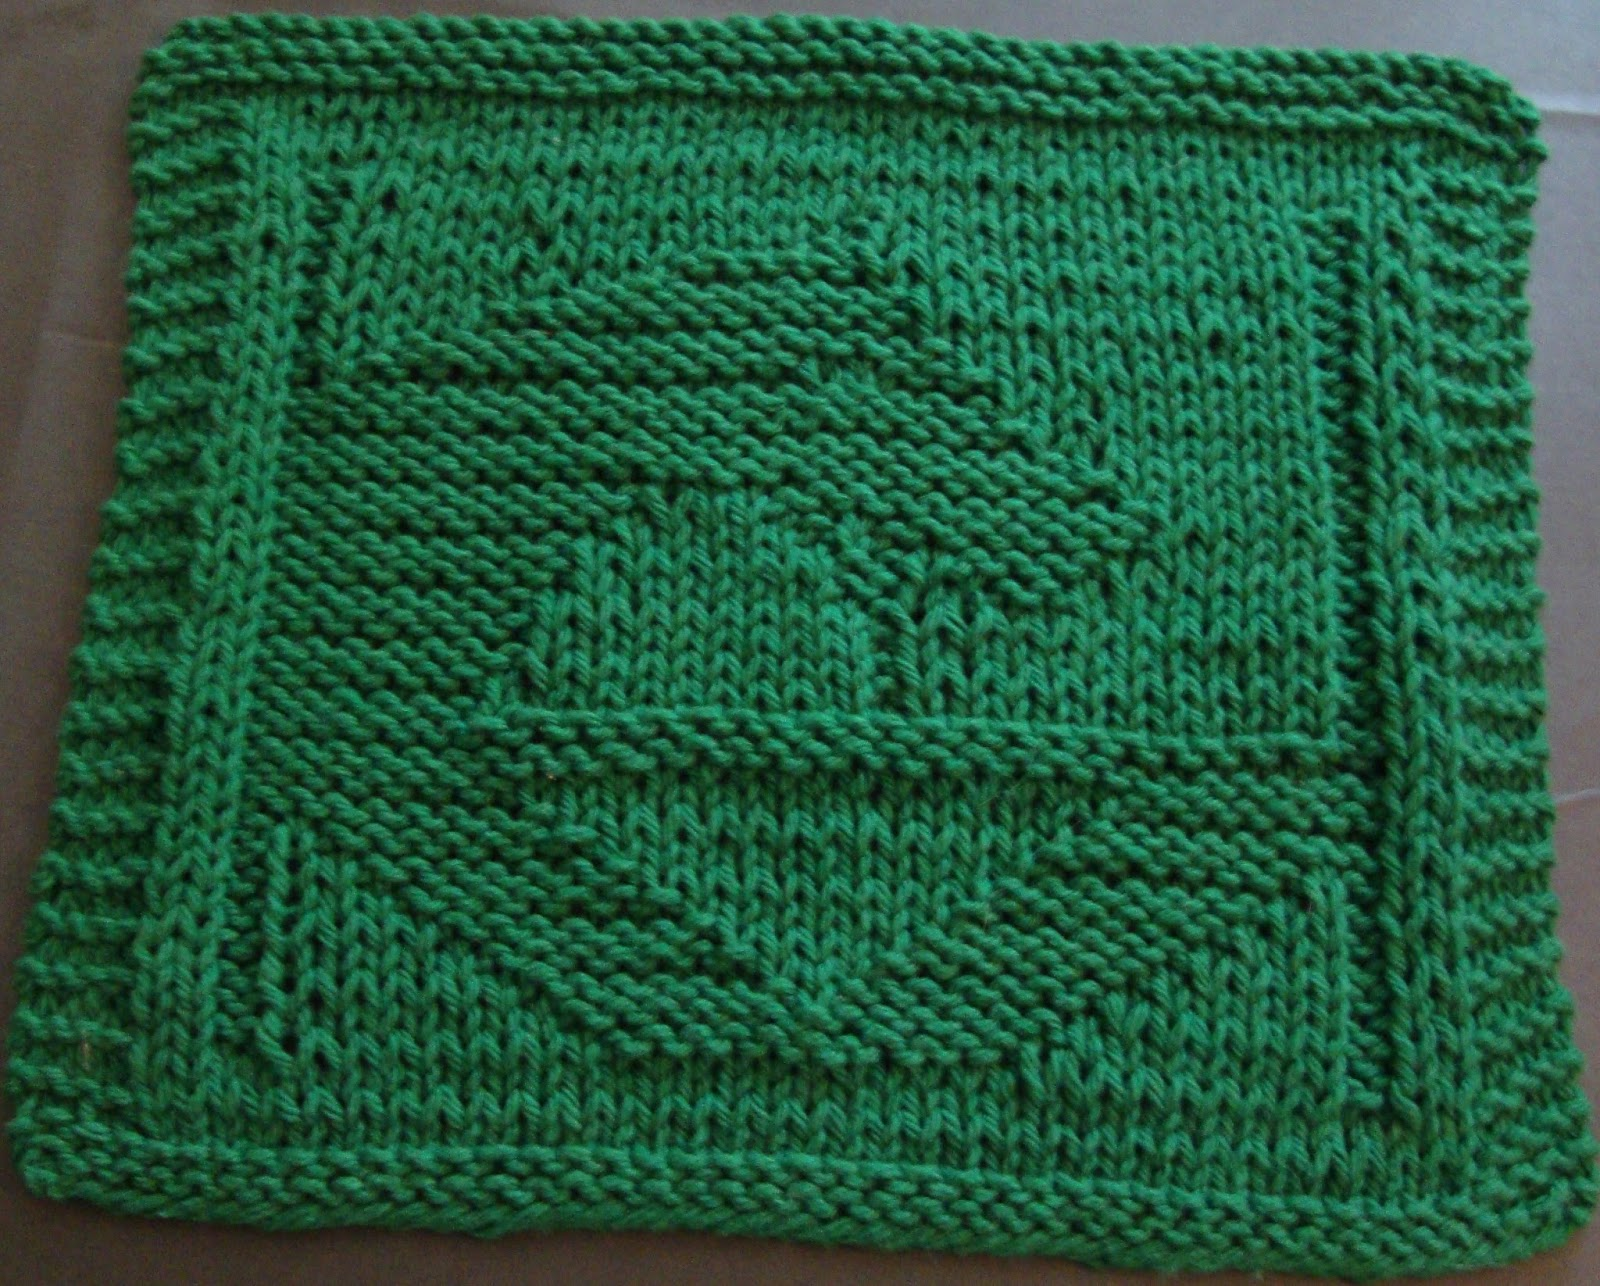 Knit Dishcloth Pattern Horse : DigKnitty Designs: Stabled Horse Knit Dishcloth Pattern